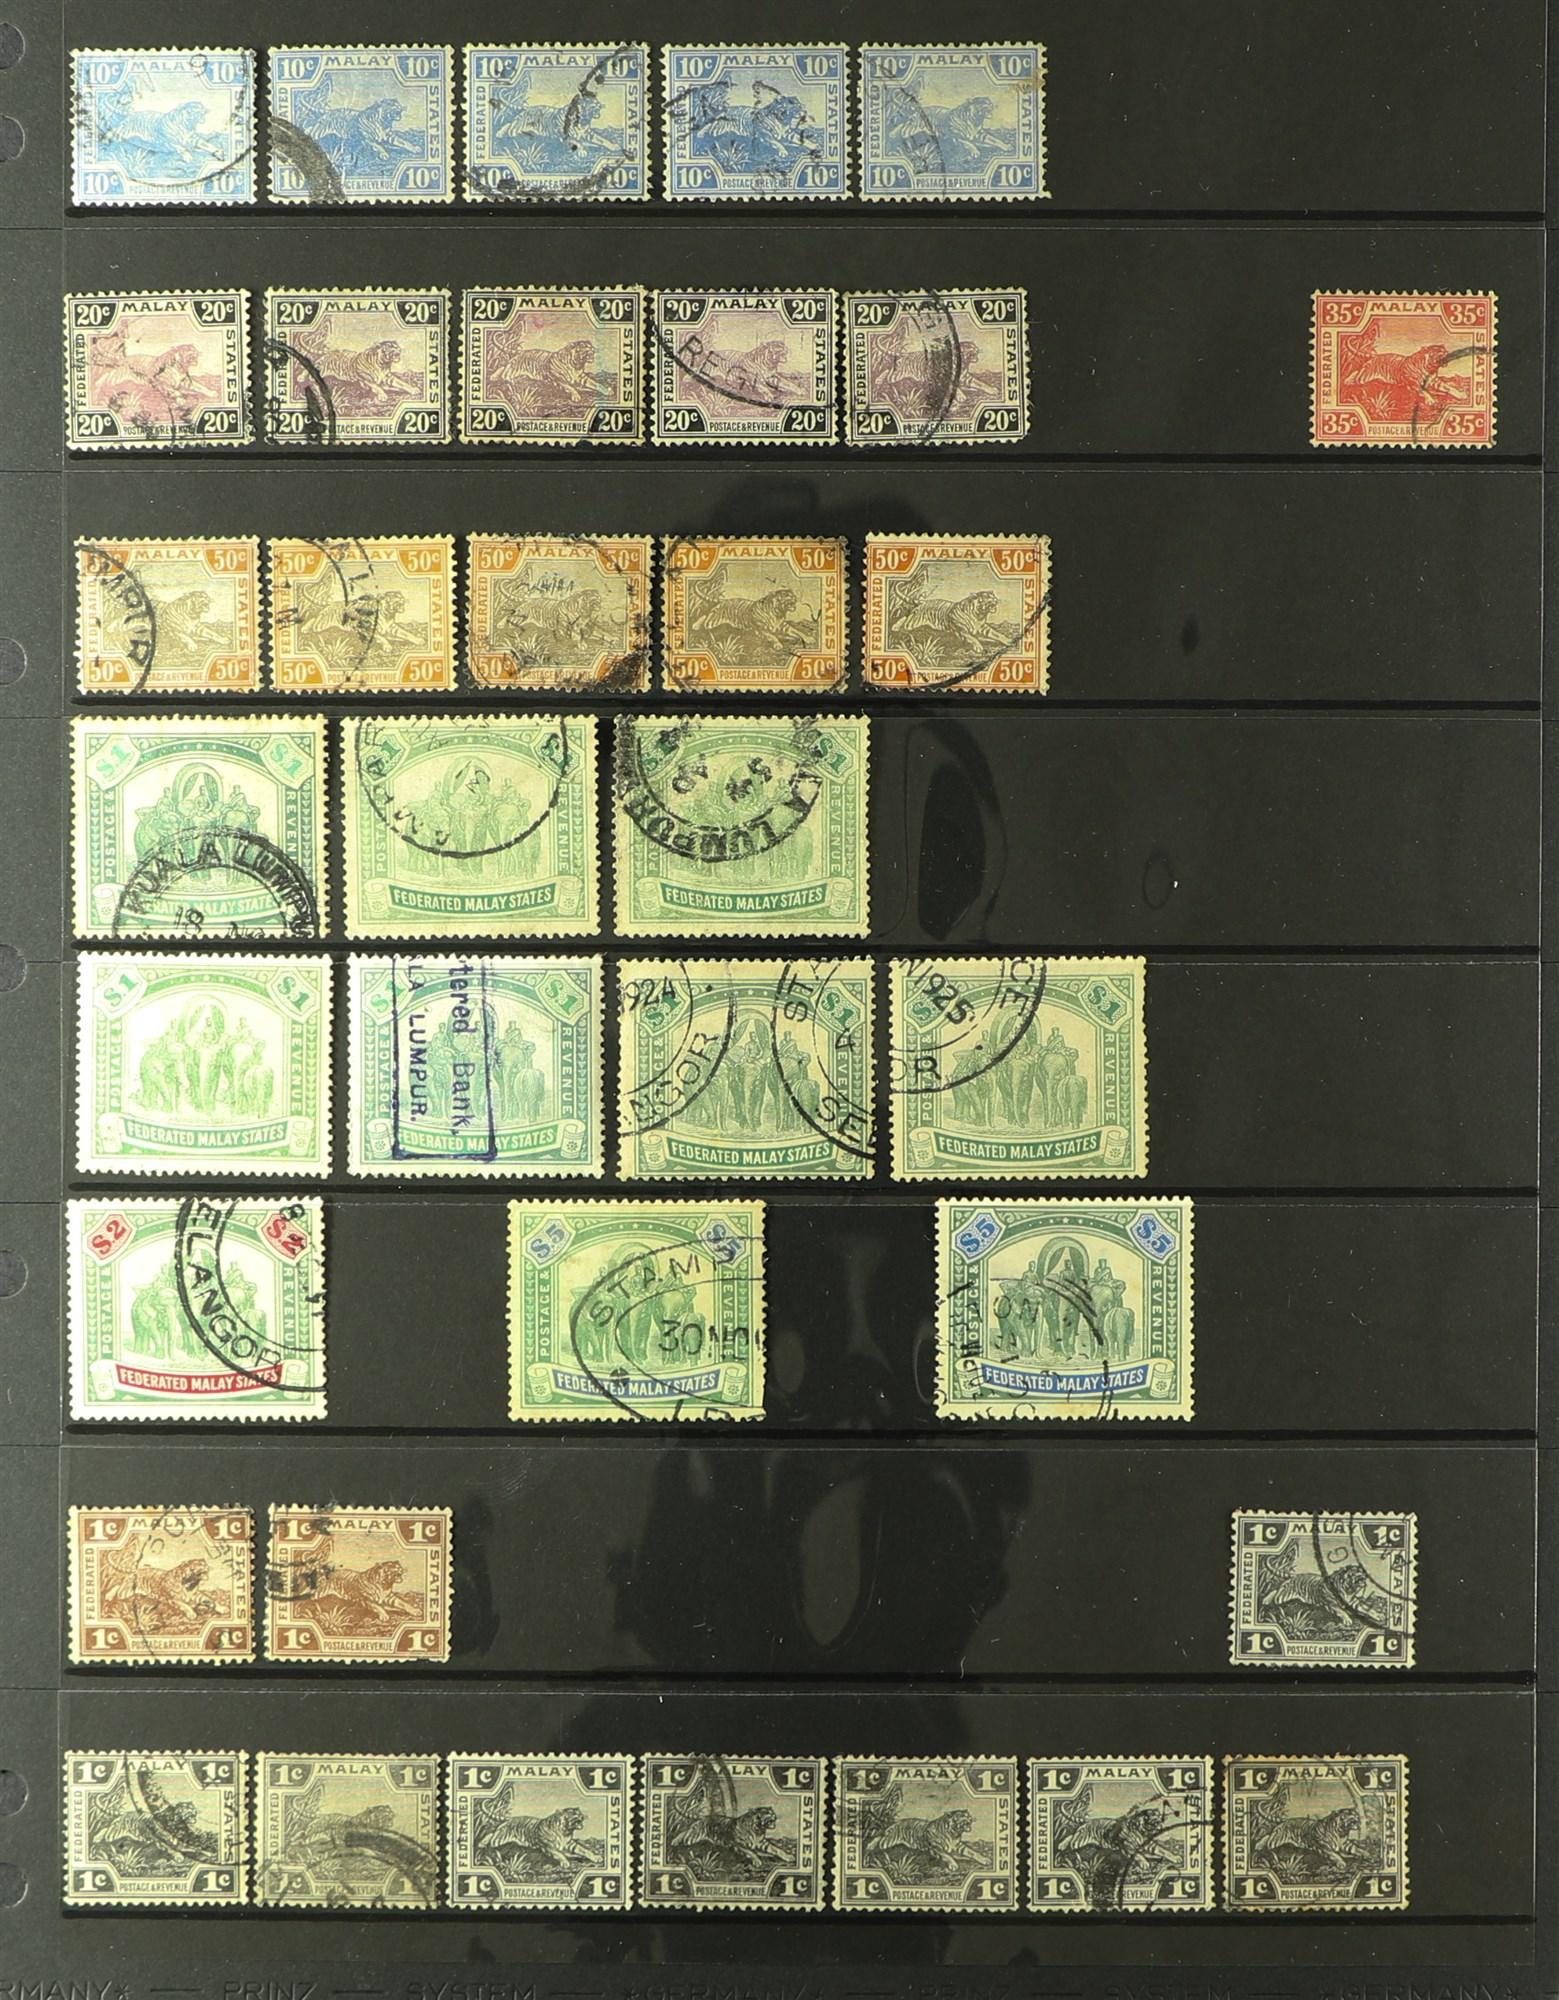 MALAYA STATES FEDERATED MALAY STATES 1900-1934 used ranges with many shades, wmk varieties & - Image 3 of 6